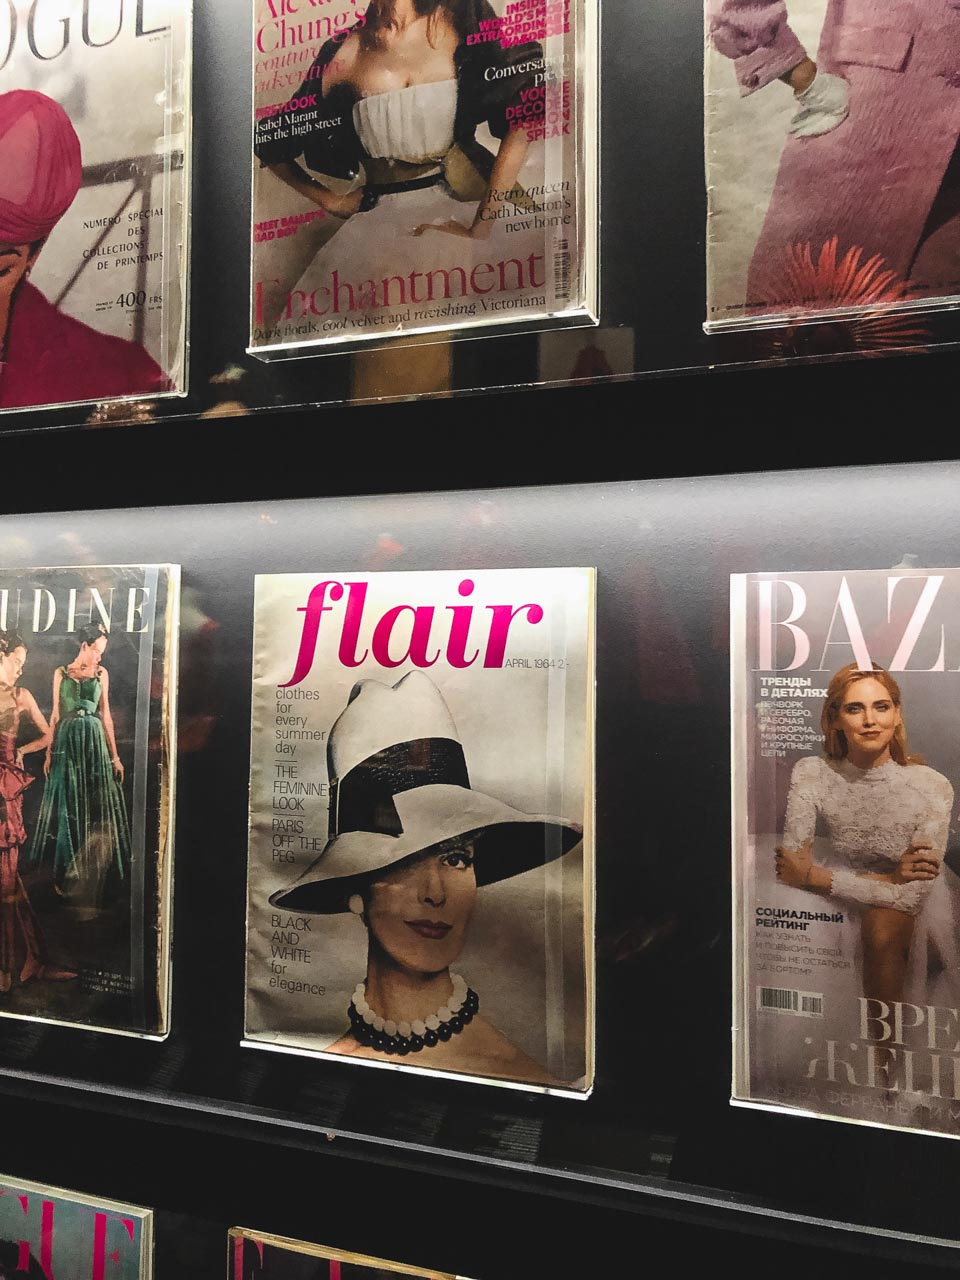 Magazine covers featuring Dior looks at the Victoria and Albert Museum in London